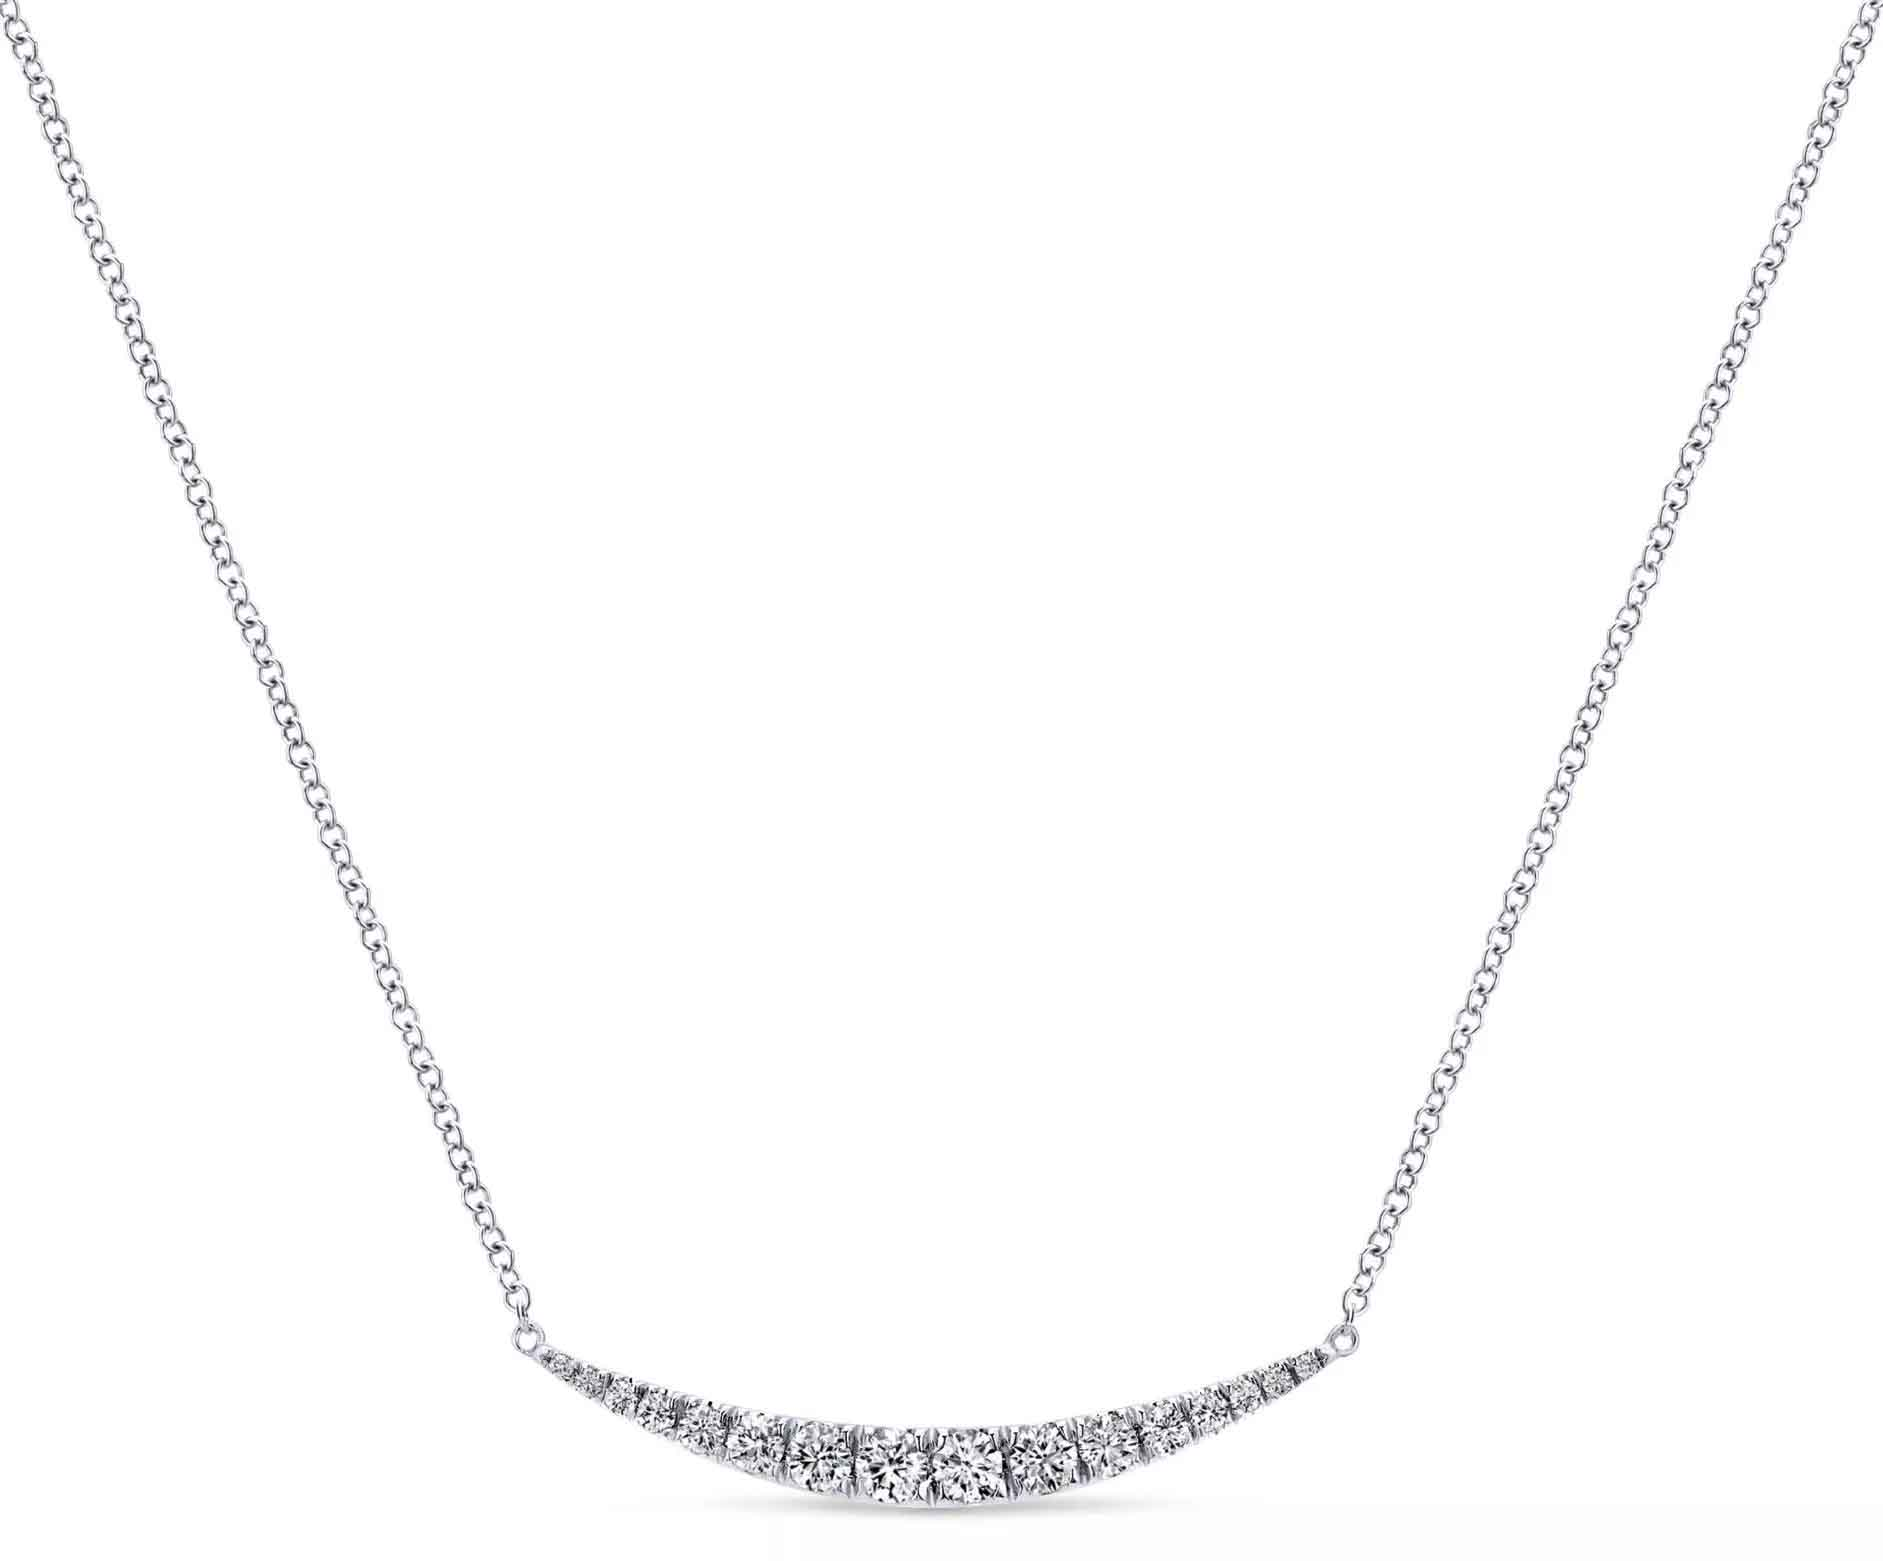 Indulgence bar necklace in 14k white gold with 0.5 ct. t.w. diamonds